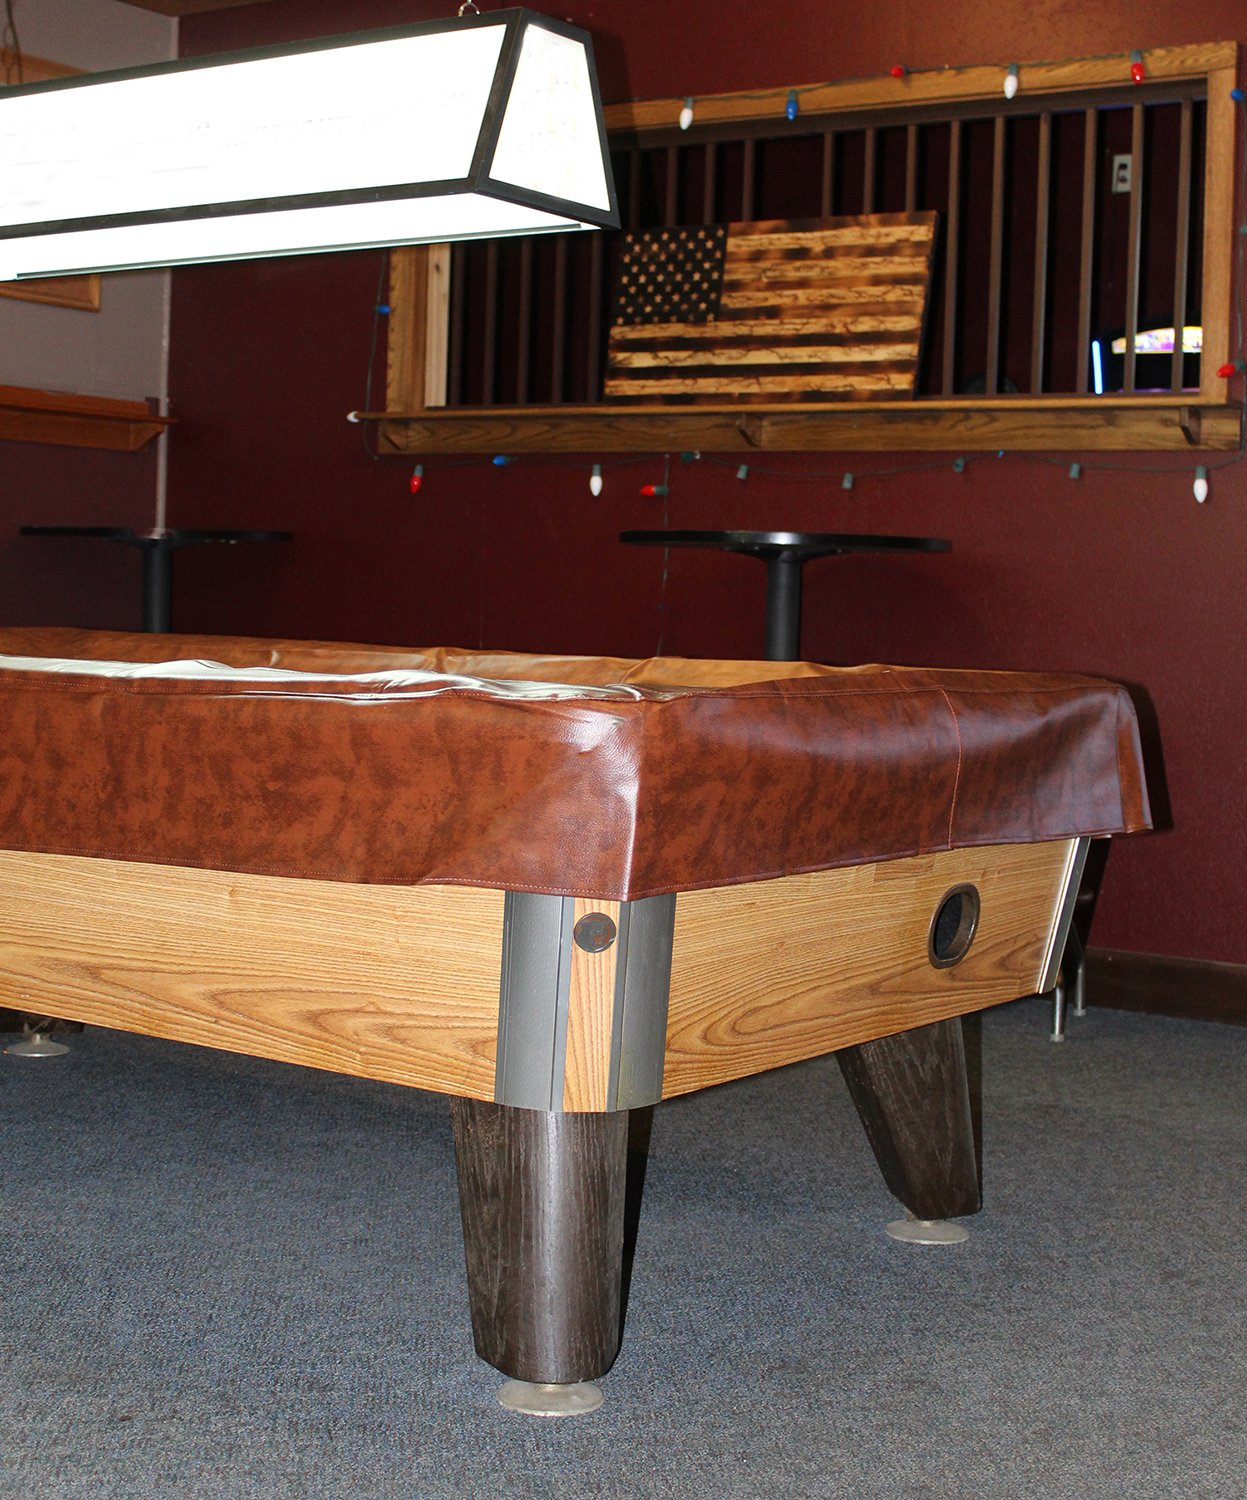 Pool Table Cover 8 Foot X 4 Foot (2x1m) Game ...